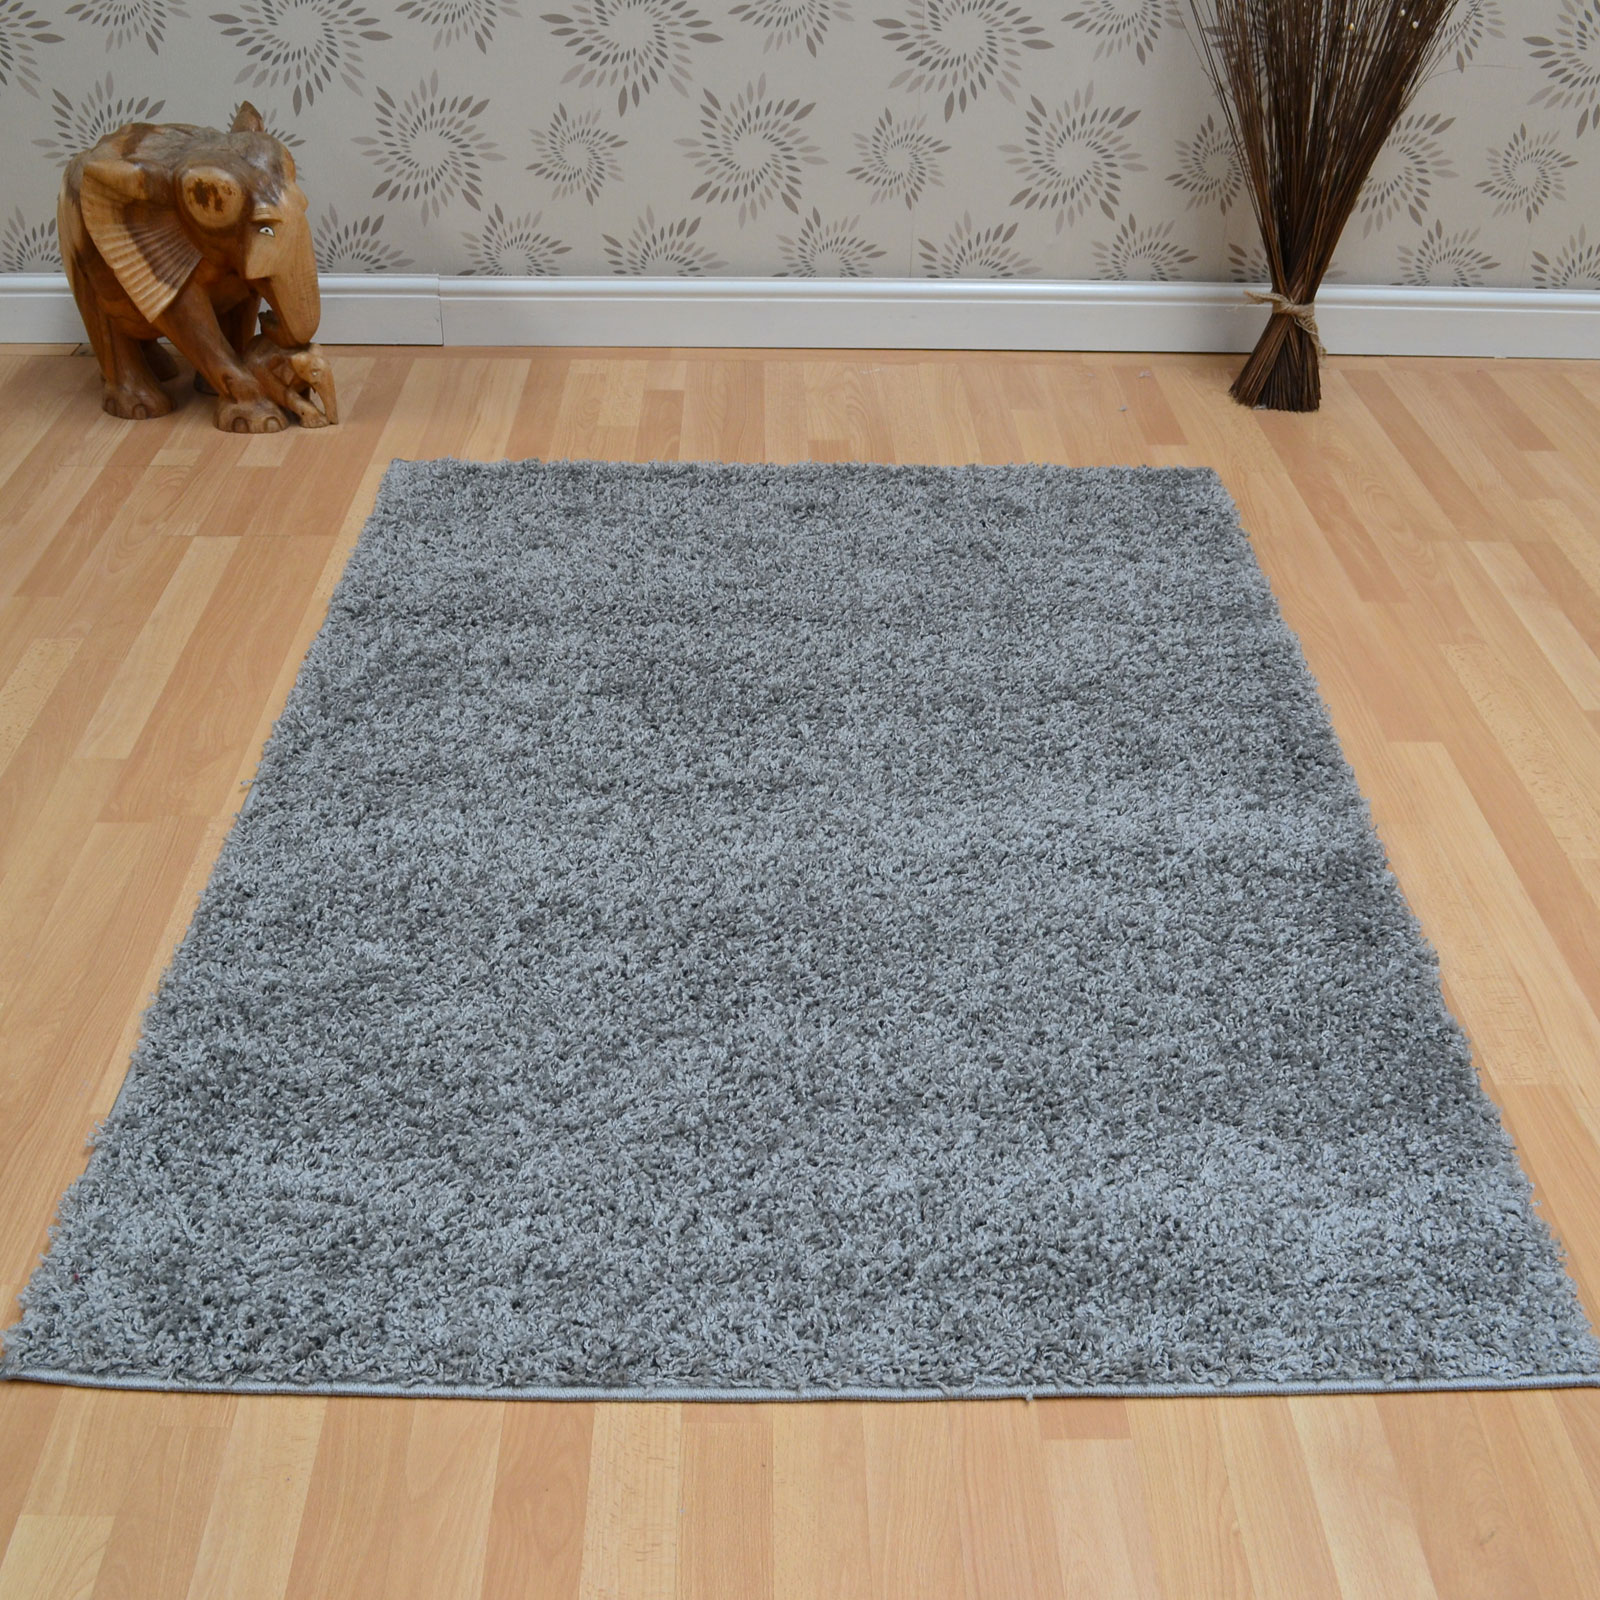 Savanna Shaggy Rugs in Silver